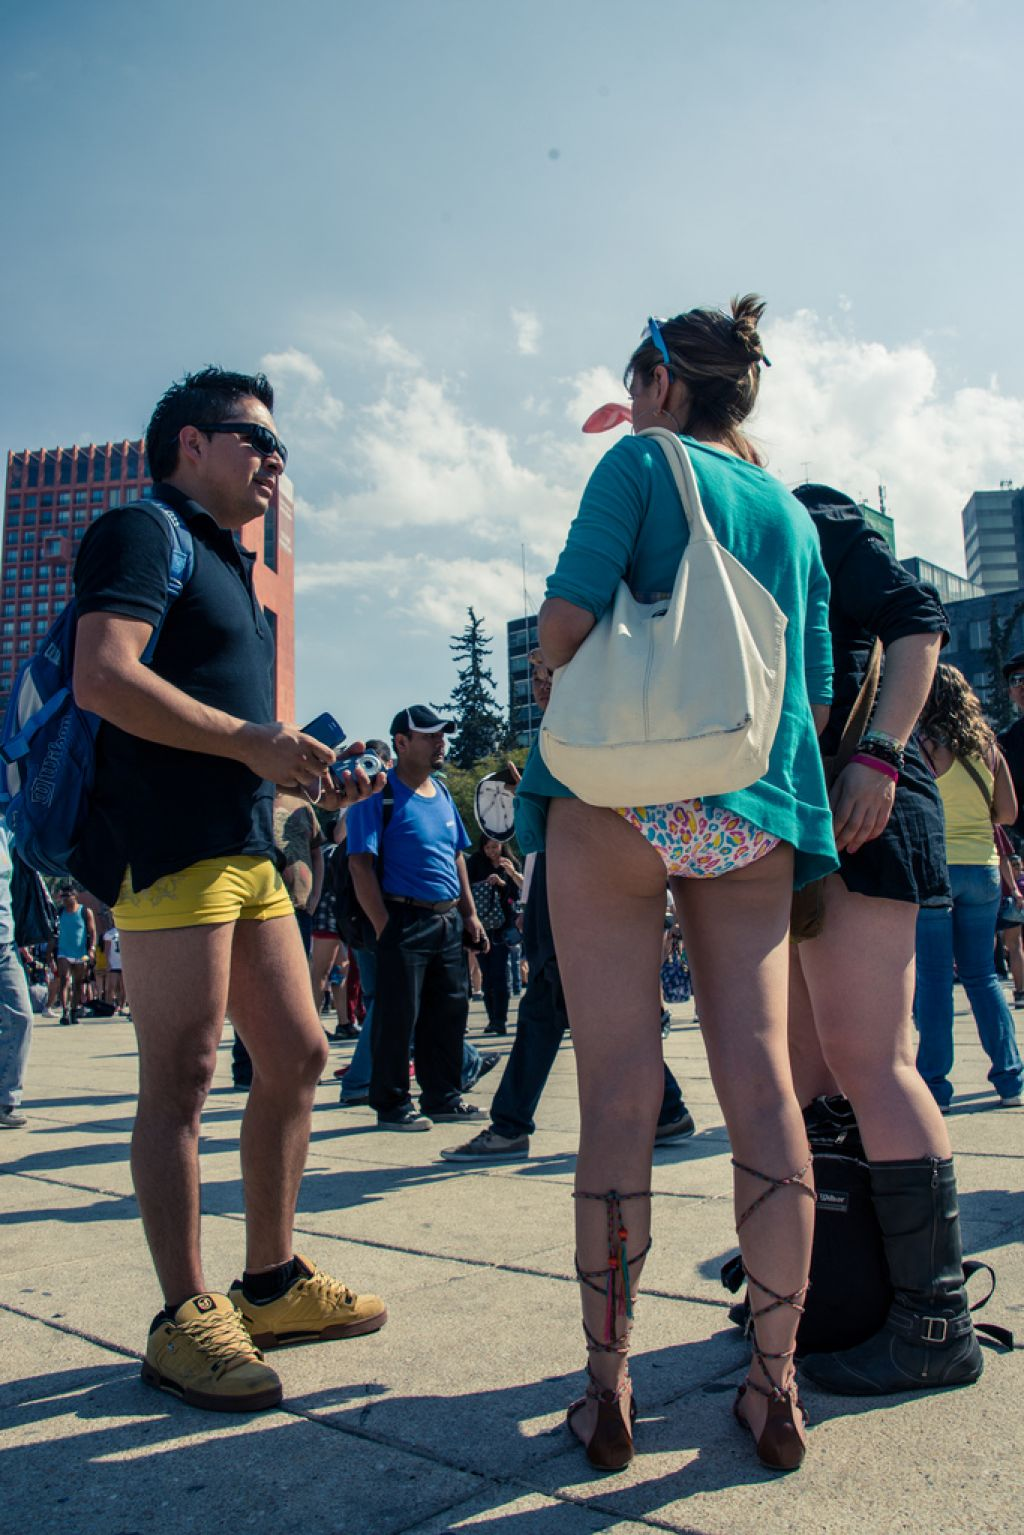 no pants8 No Pants Day in Mexico City